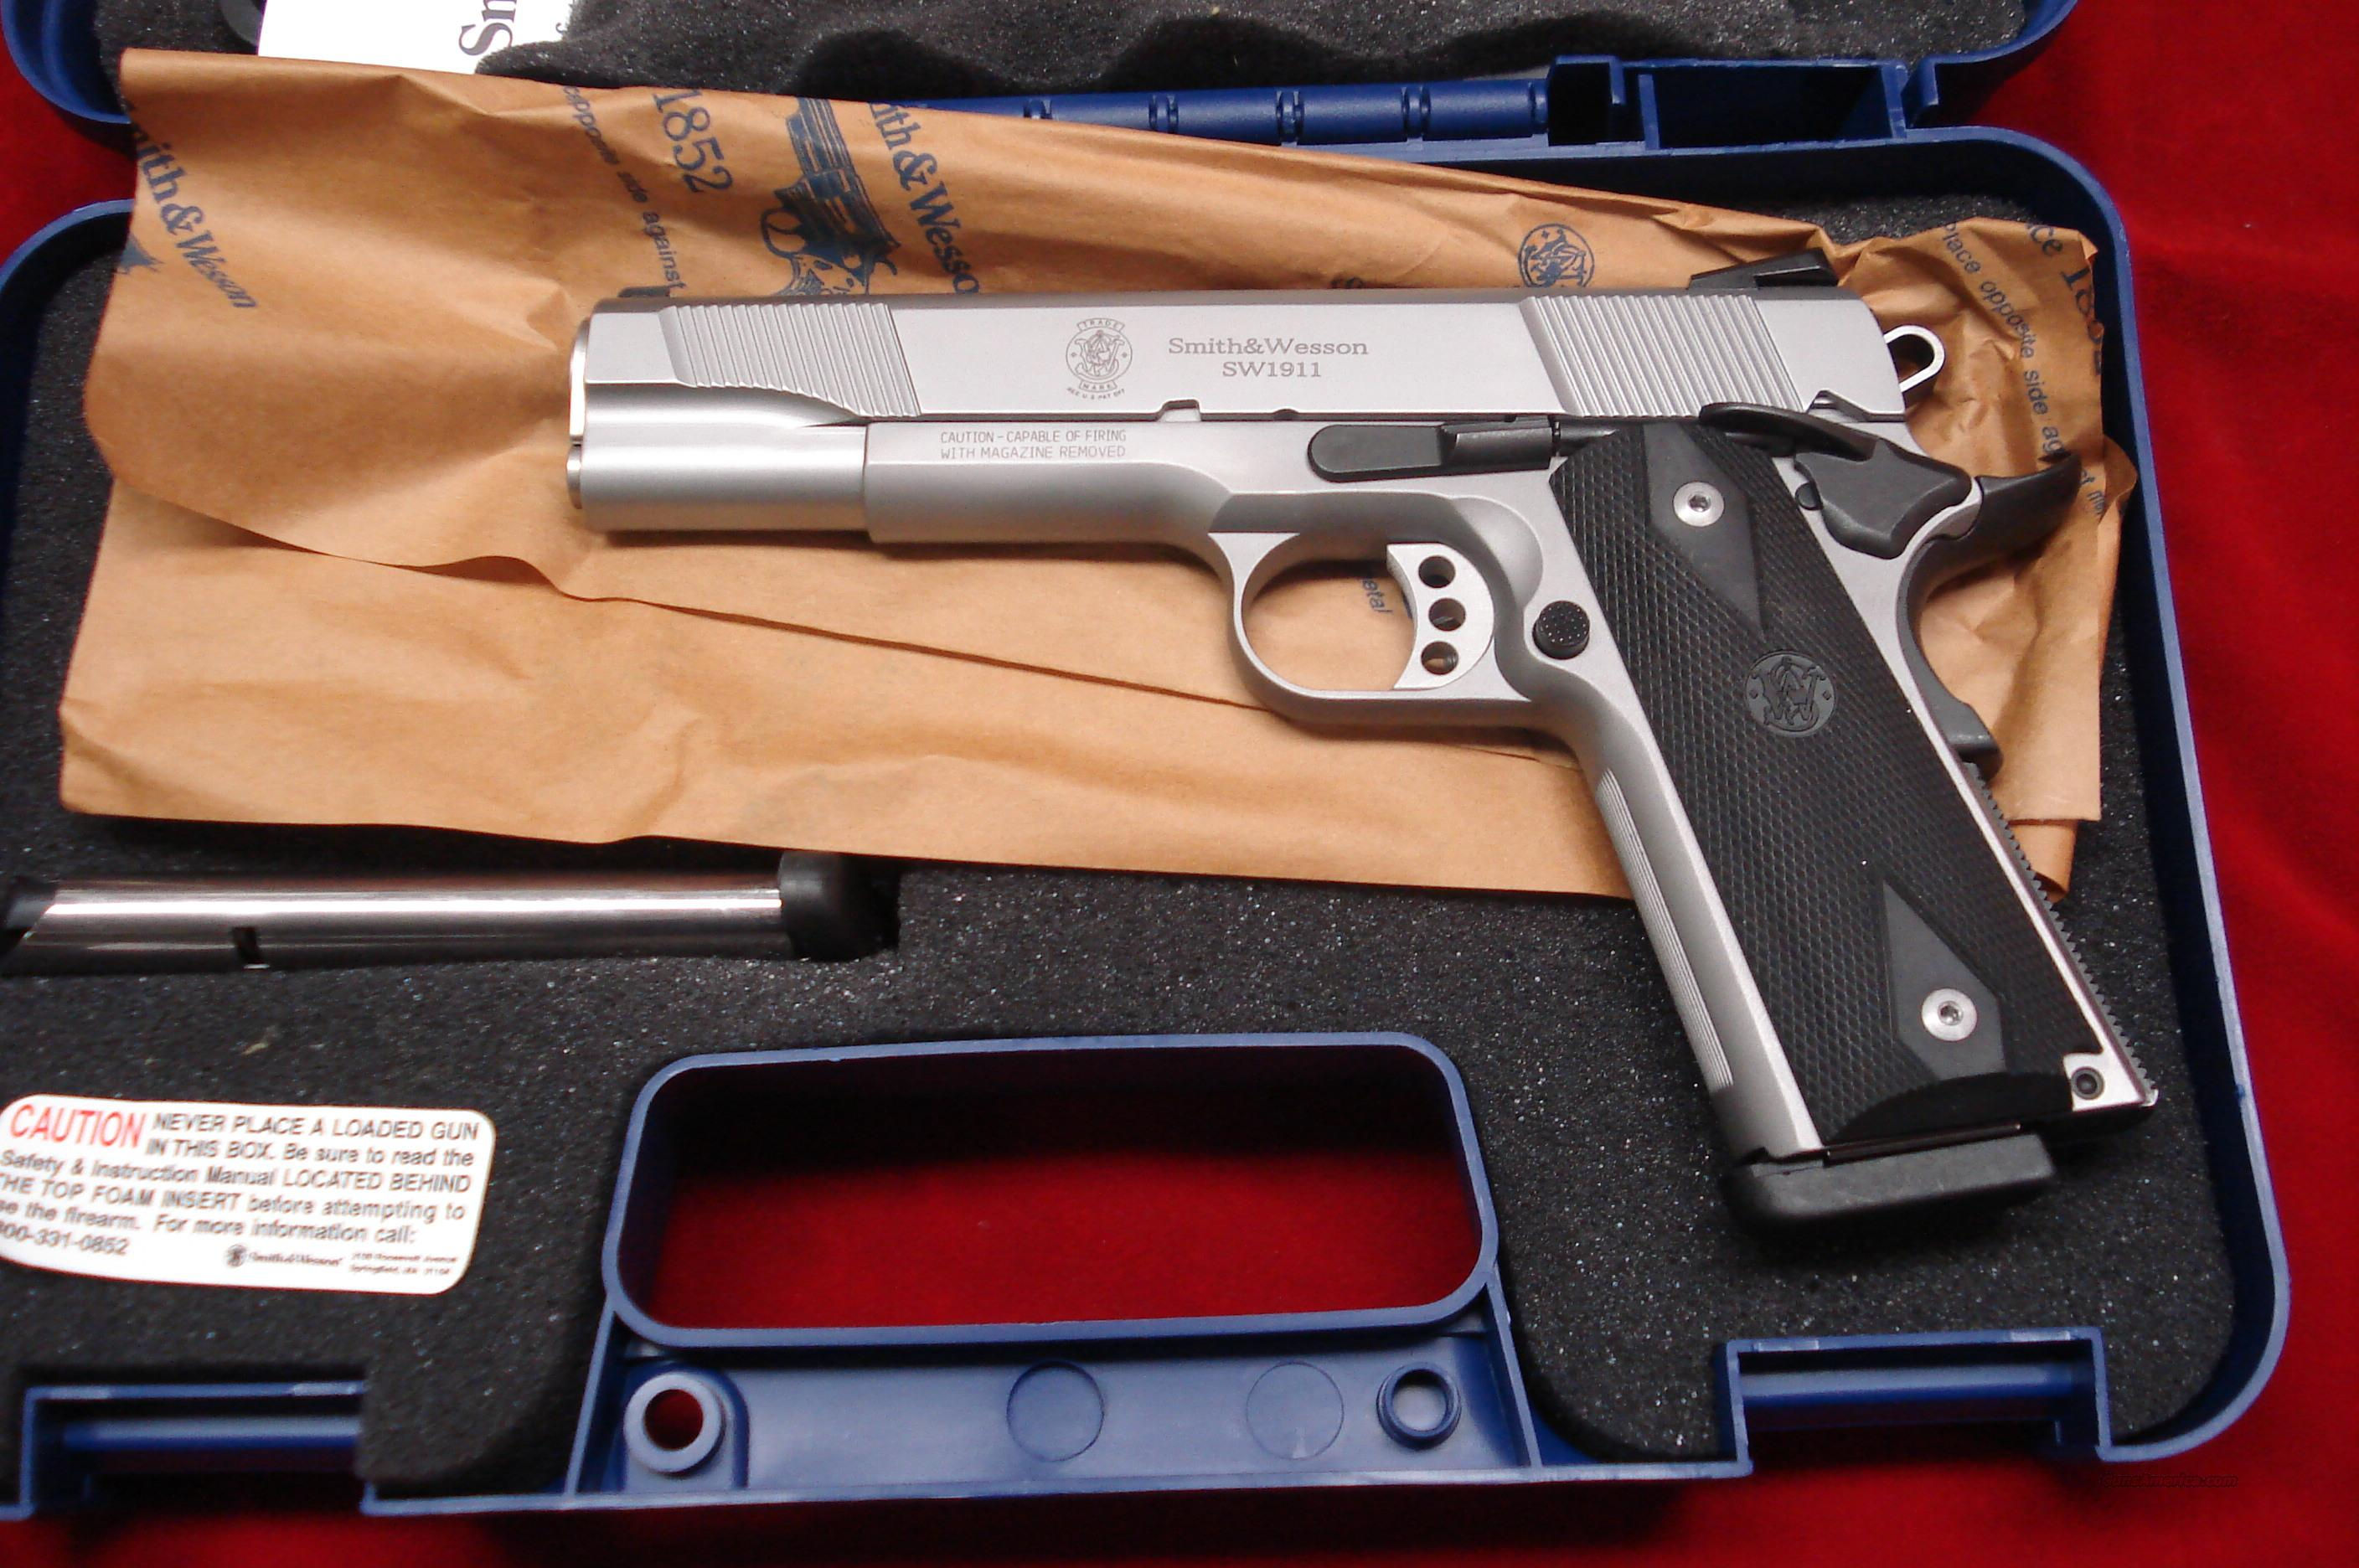 SMITH AND WESSON SW1911 STAINLESS W/NOVAK SIGHTS NEW  Guns > Pistols > Smith & Wesson Pistols - Autos > Steel Frame